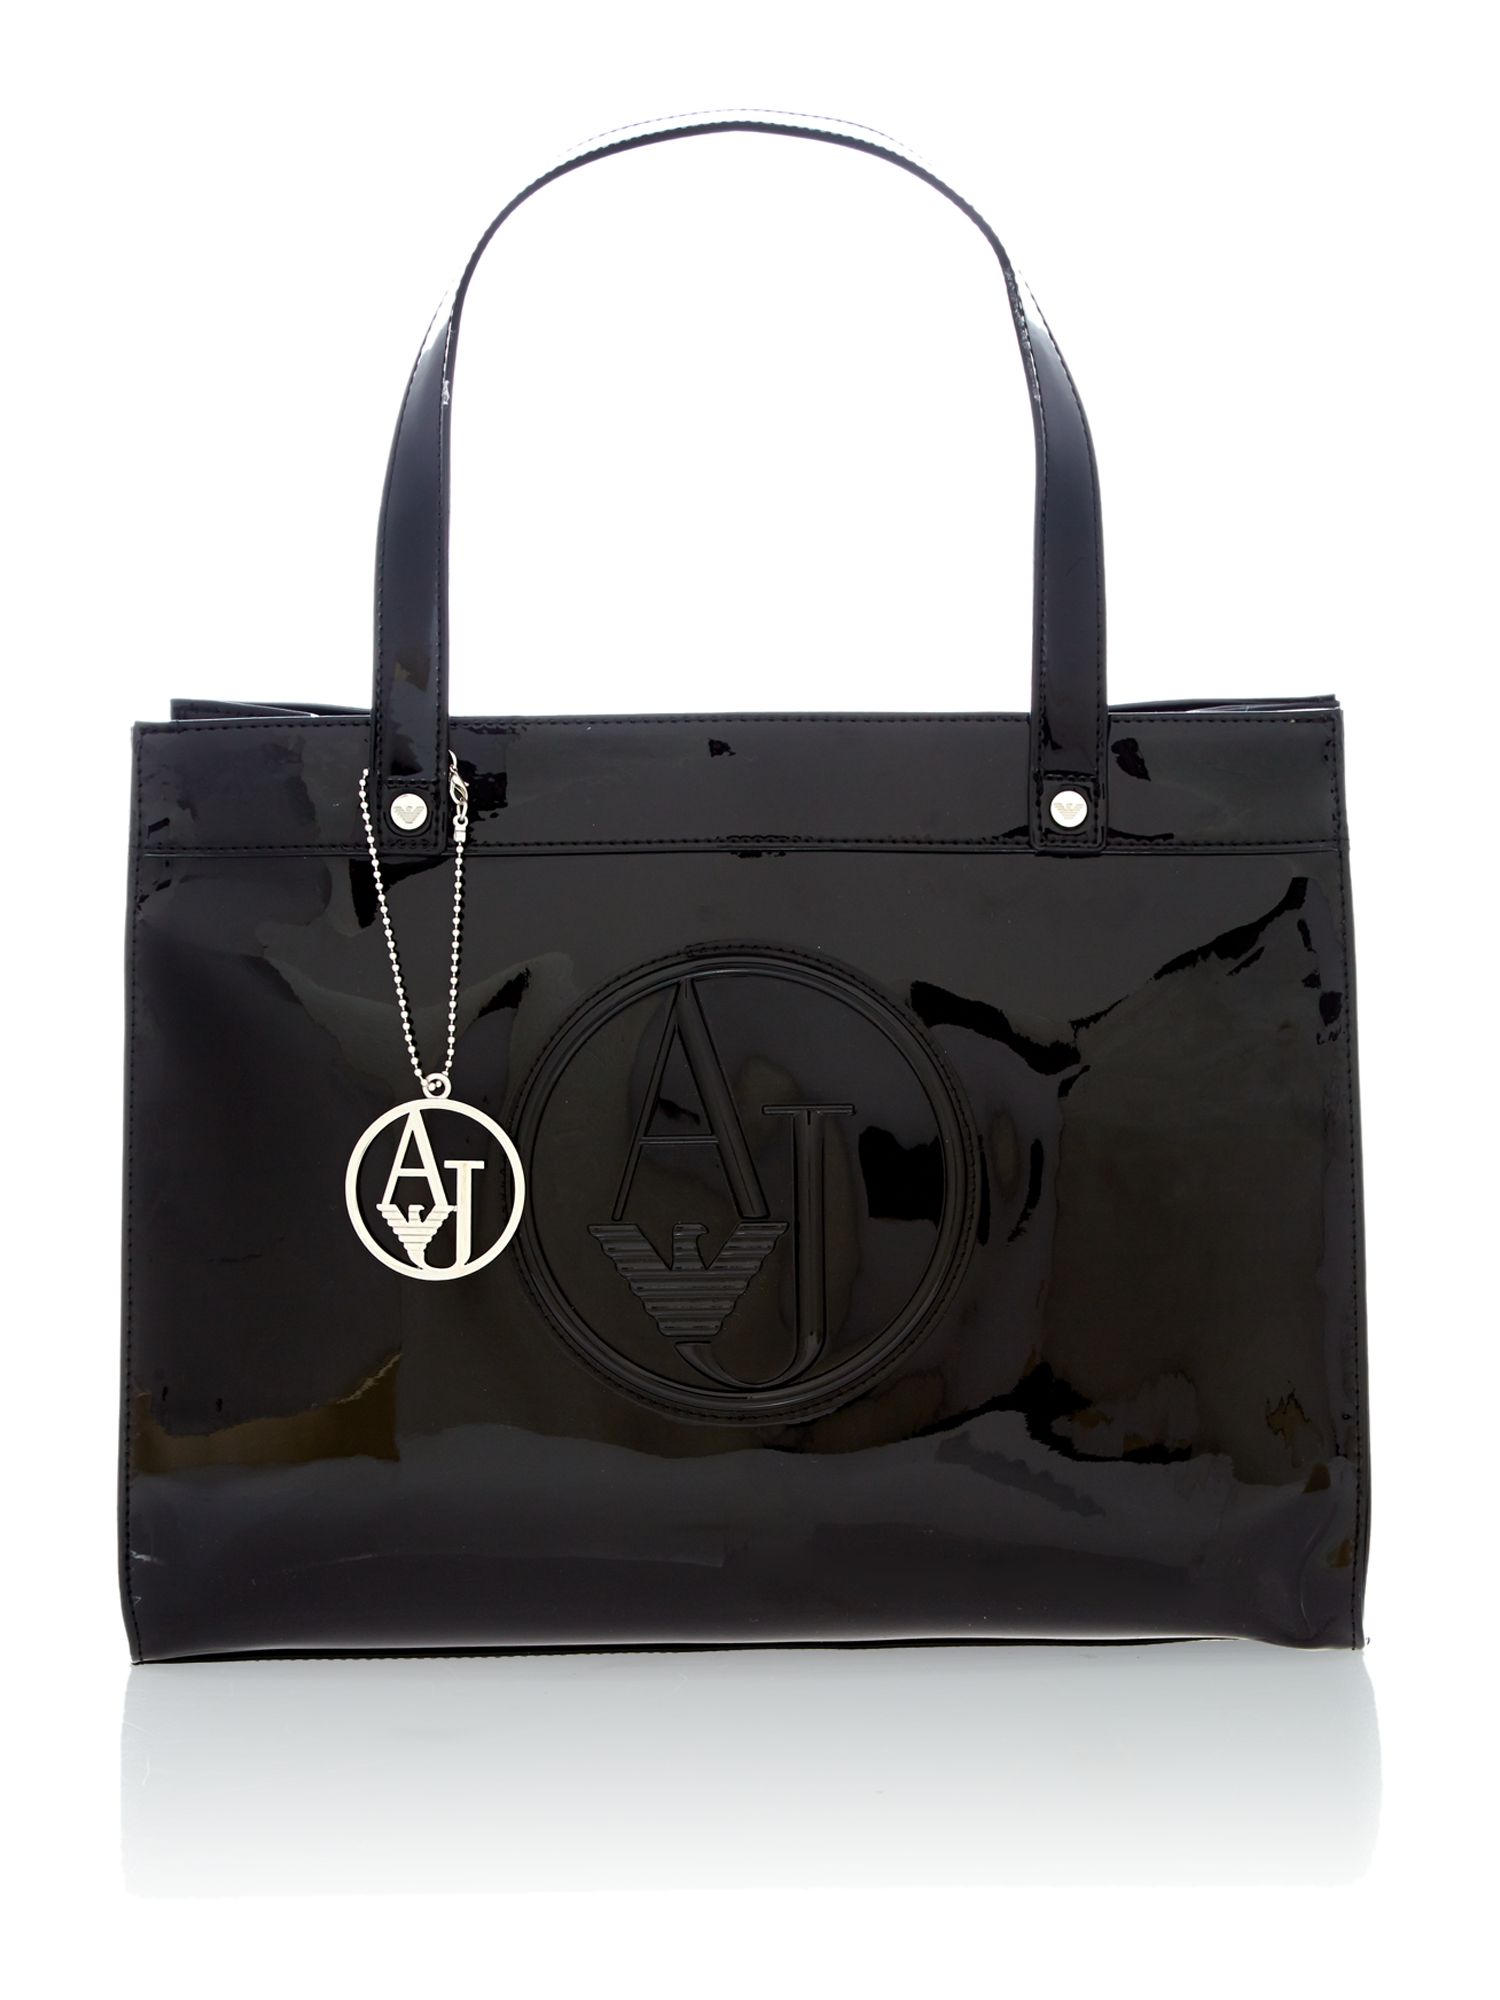 Black patent tote bag